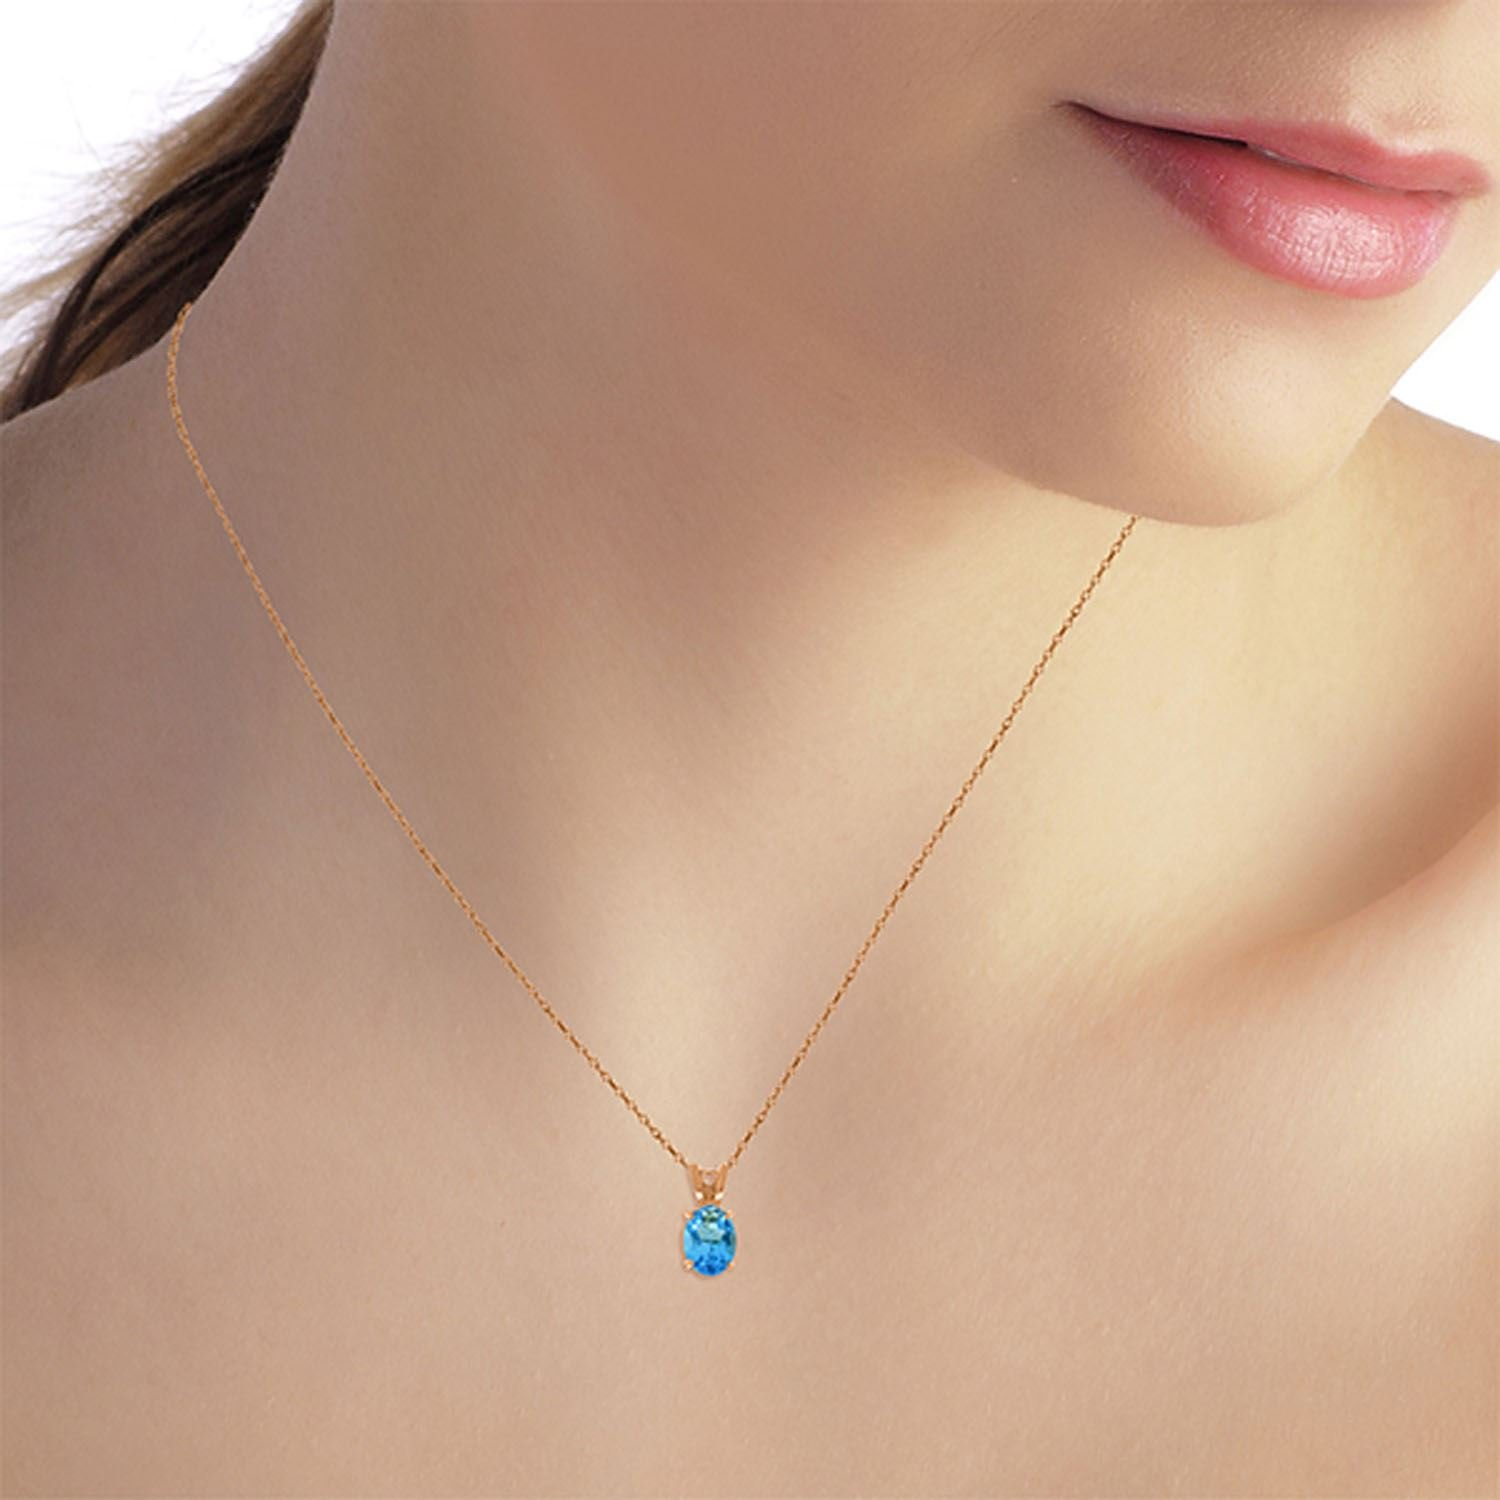 ALARRI 0.85 Carat 14K Solid Rose Gold Solitaire Blue Topaz Necklace with 22 Inch Chain Length